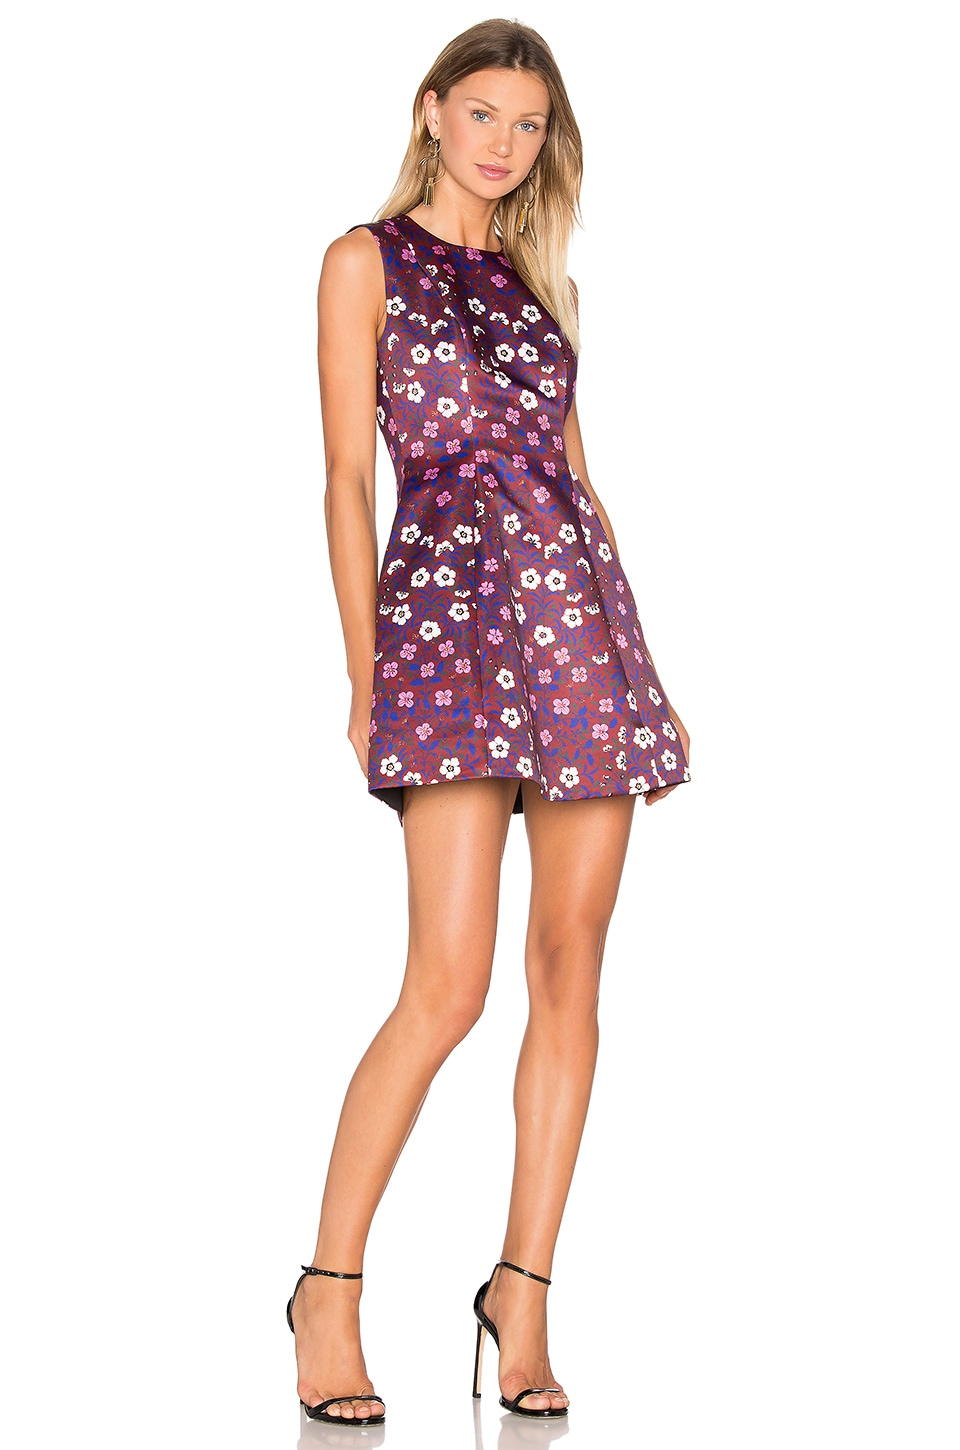 Duchess Bombe Dress by Cynthia Rowley